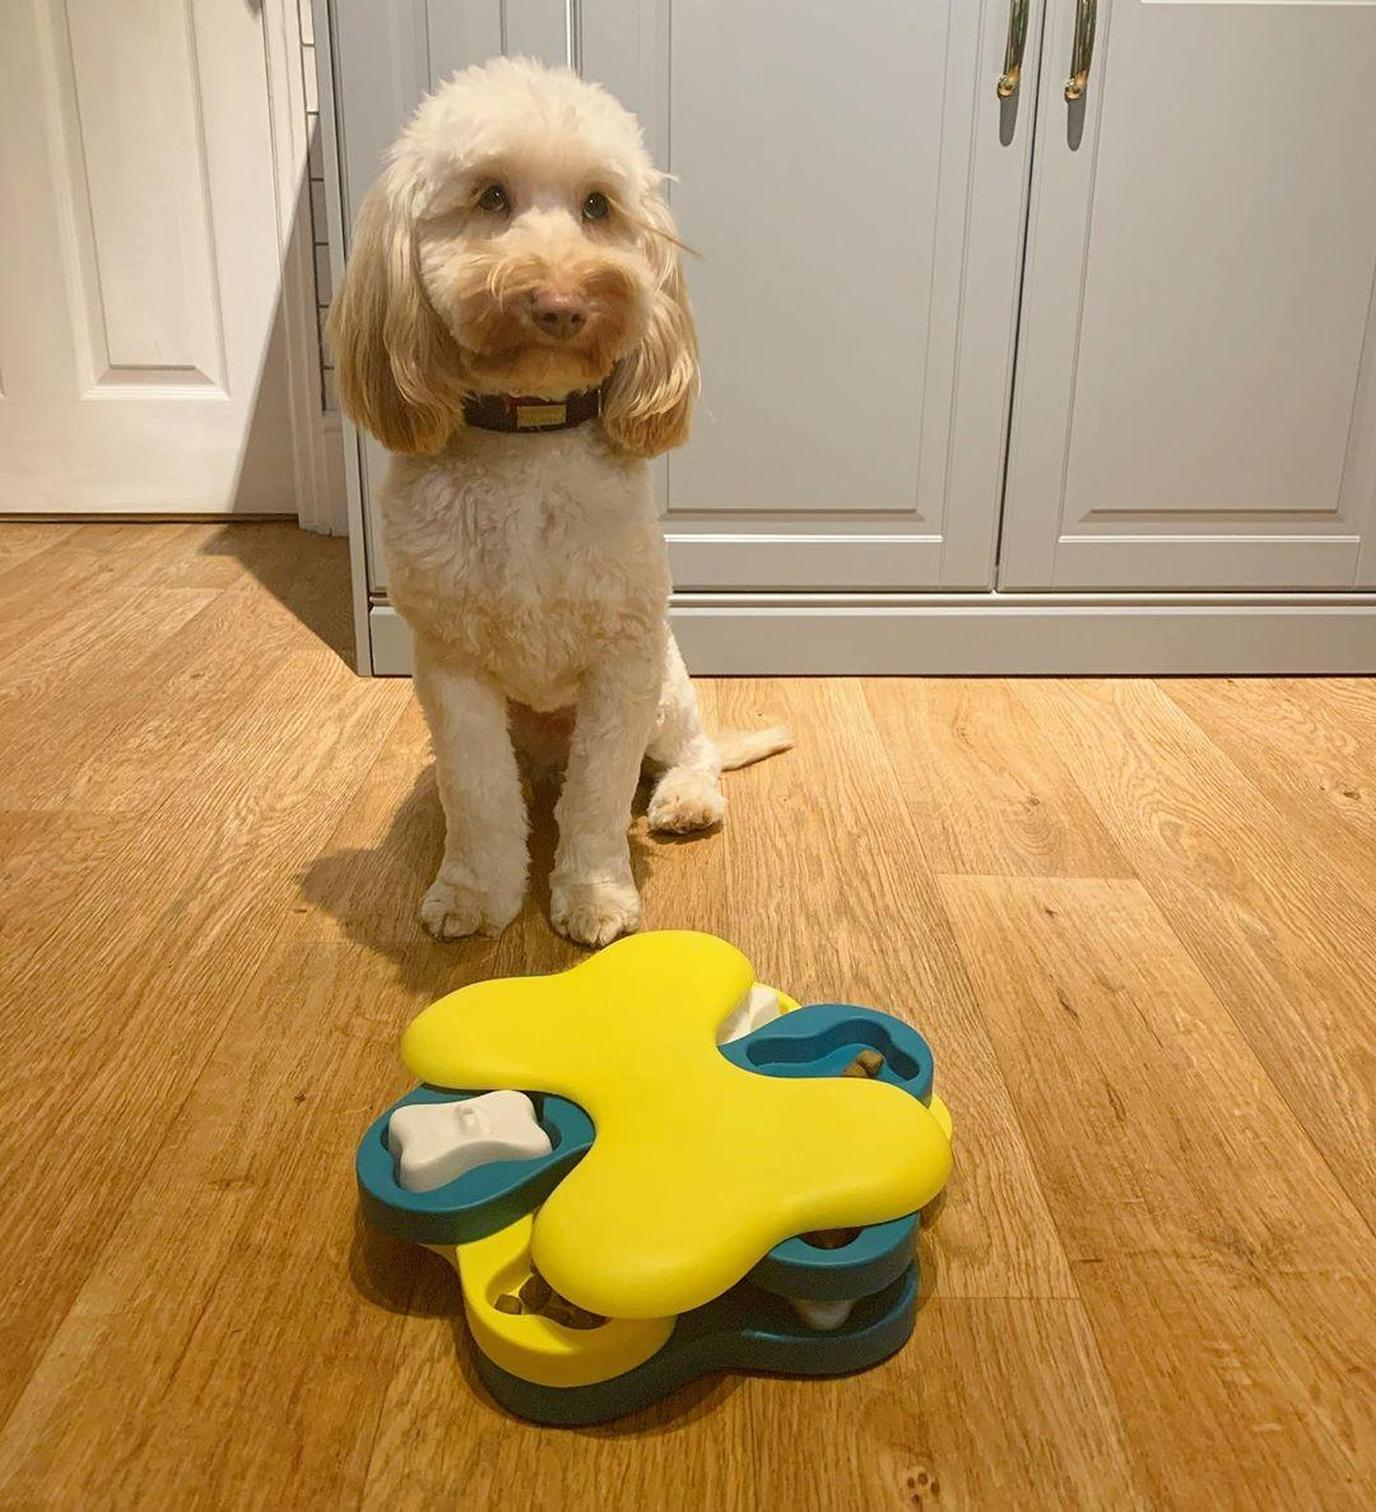 A dog prepares to solve a treat puzzle.